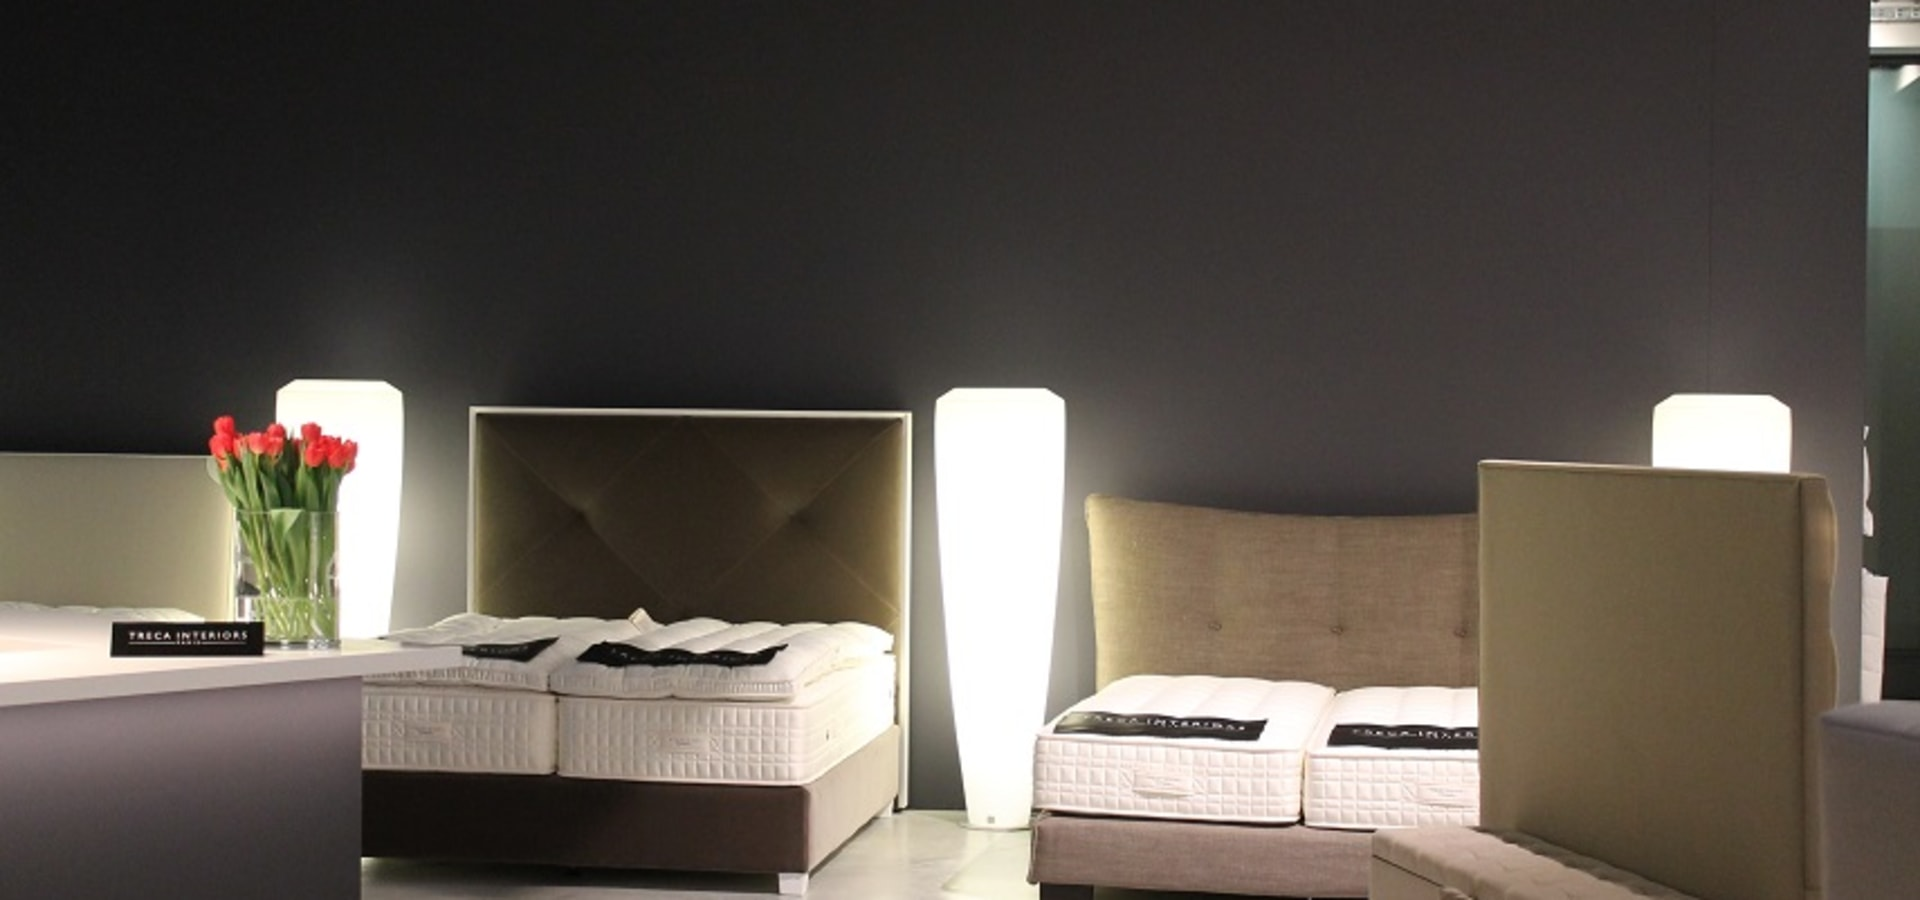 betten concept store stuttgart m bel accessoires in. Black Bedroom Furniture Sets. Home Design Ideas